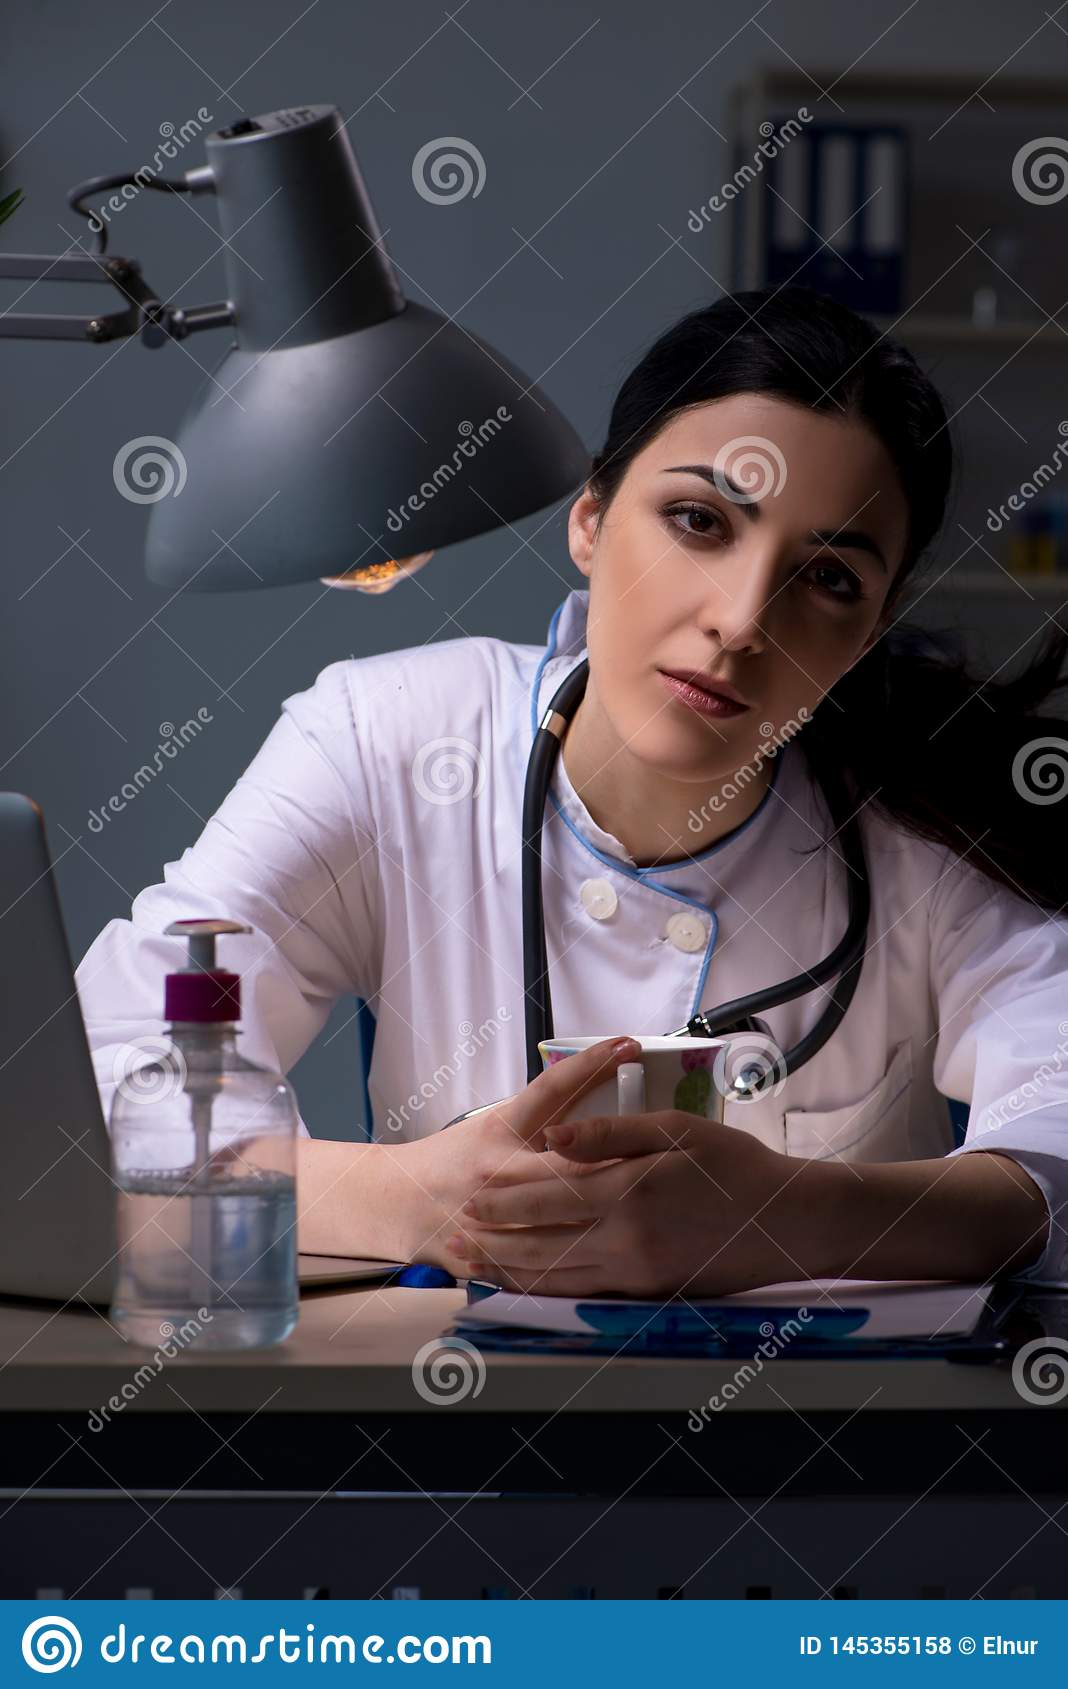 The young female doctor working at night shift. Young female doctor working at night shift royalty free stock photos